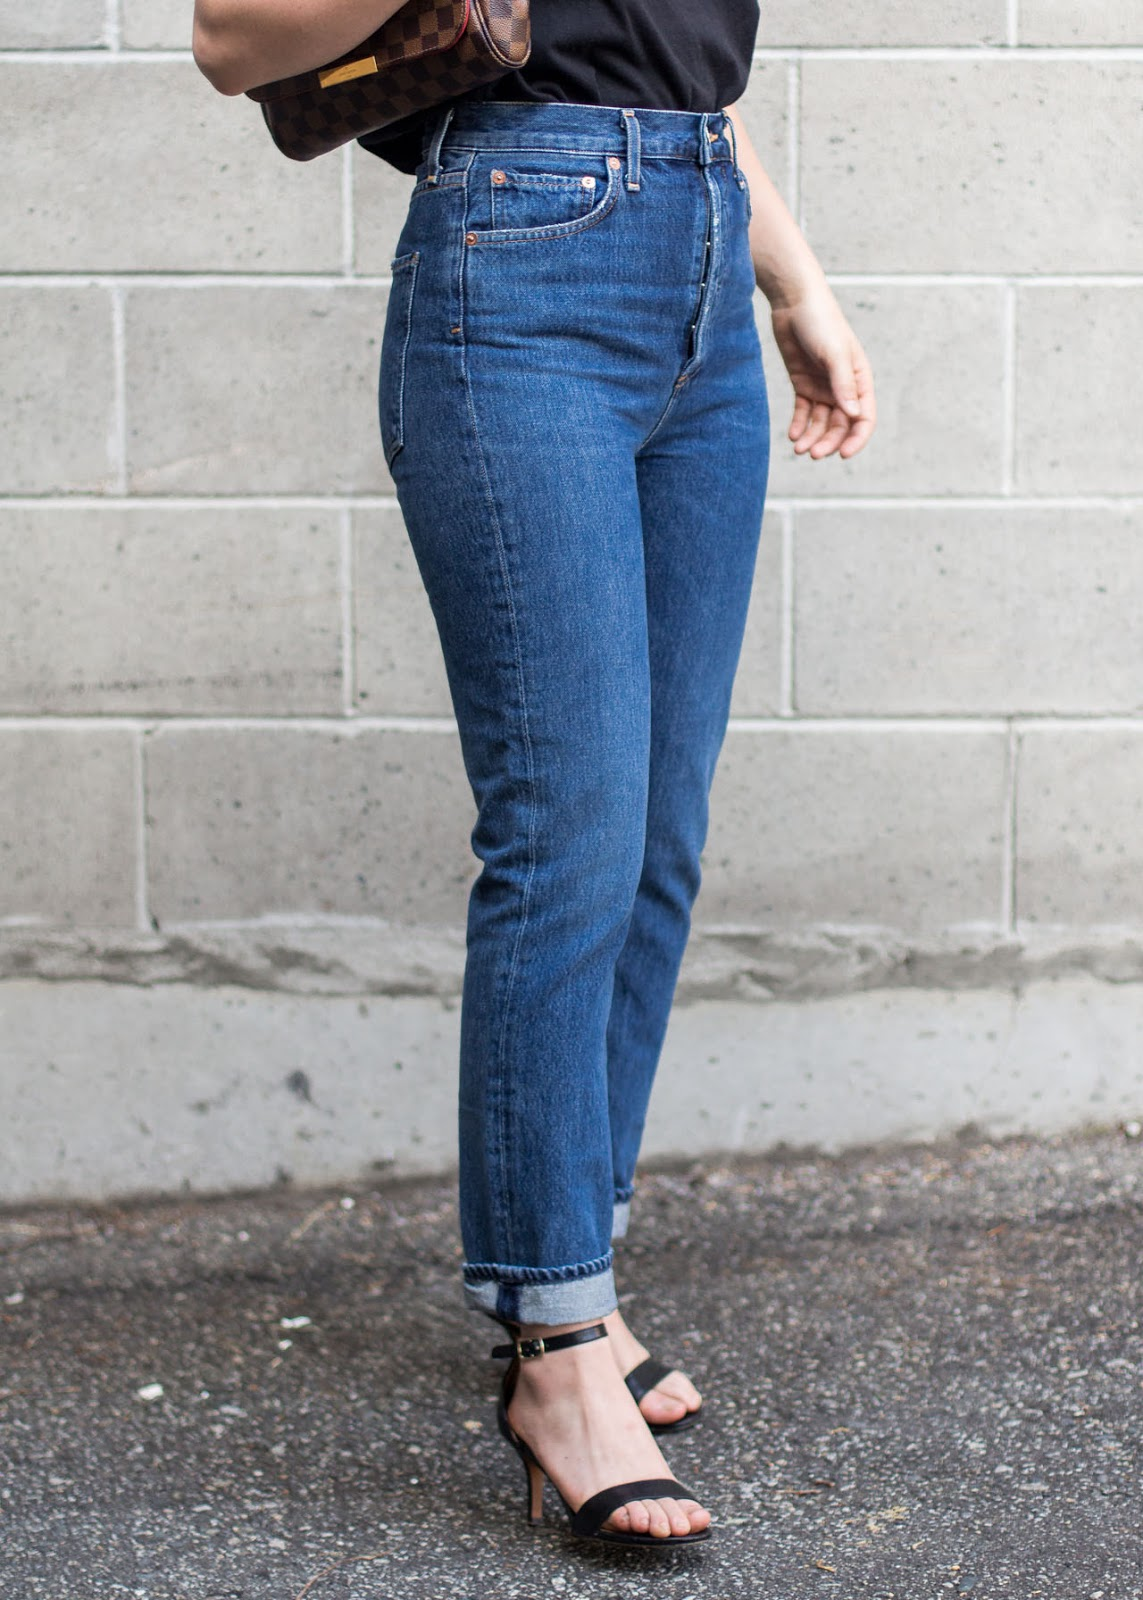 AGOLDE riley high rise straight crop in air blue denim jeans - Outfit details